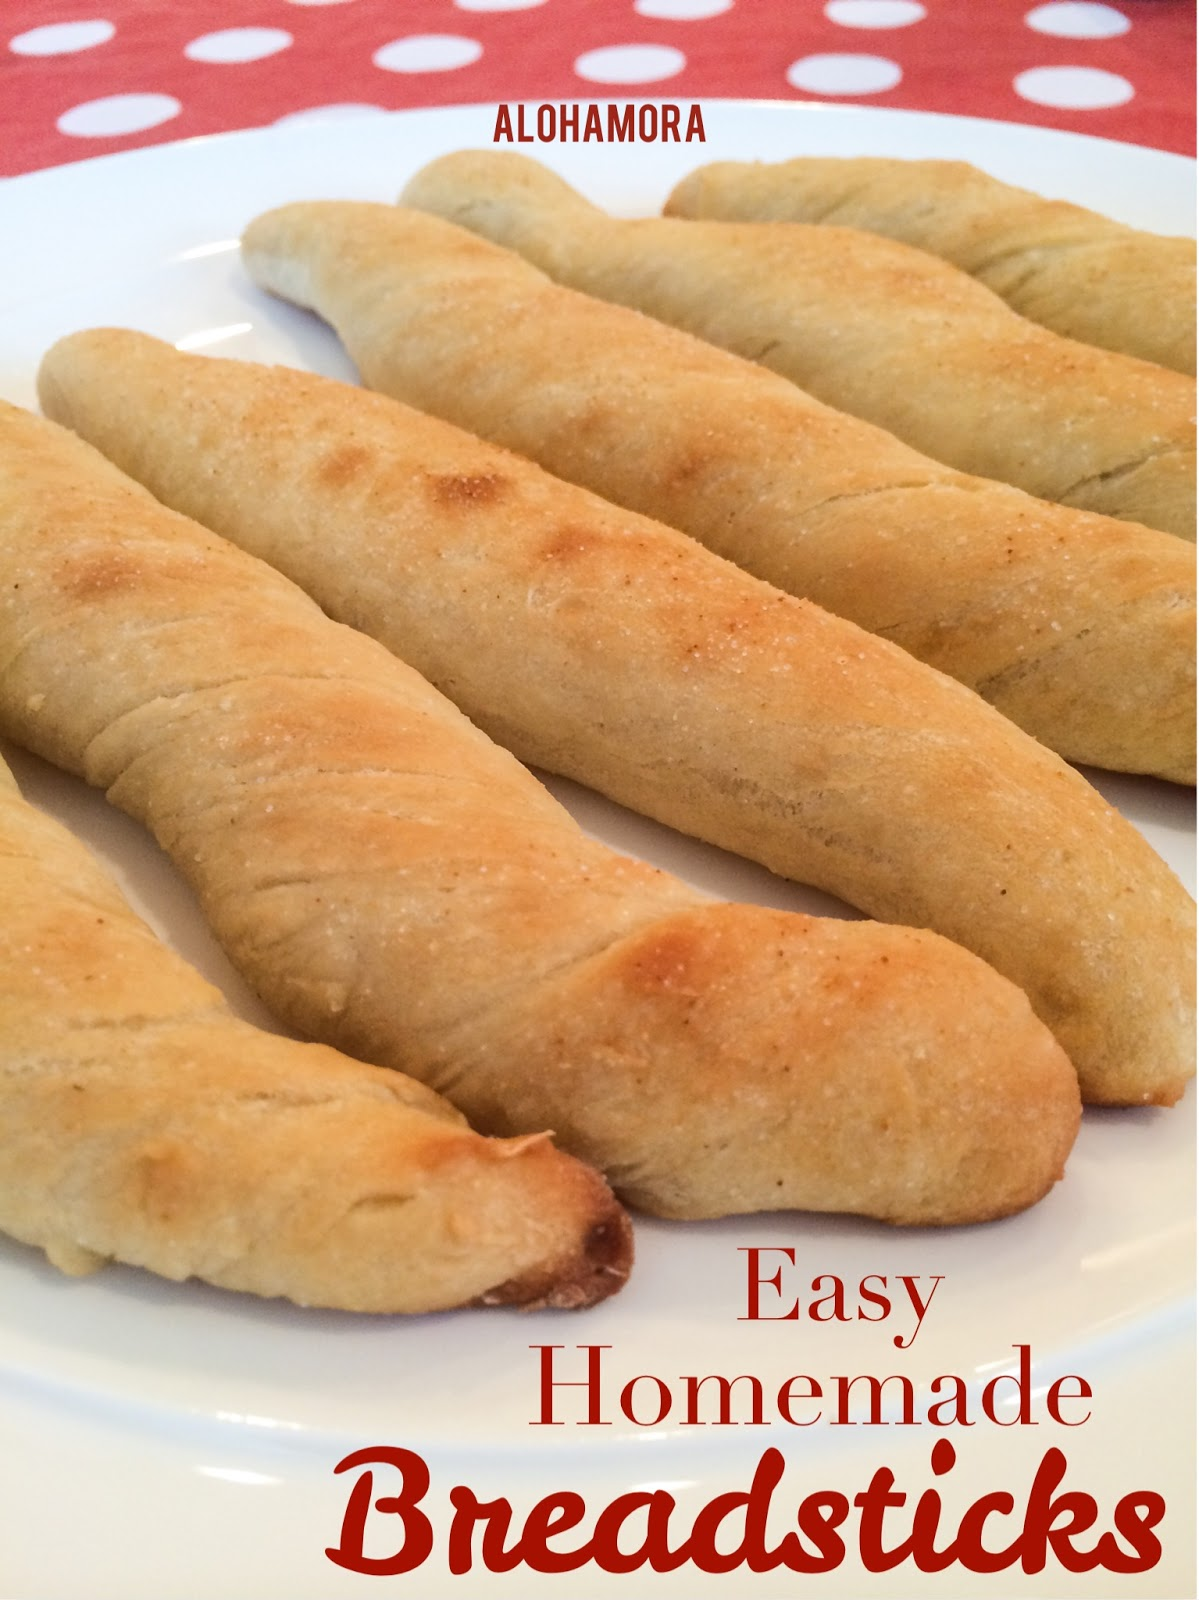 Easy Homemade Breadsticks.  Quick and easy to make, and the perfect side for lasagna, pasta, or anything really.  Makes a great weeknight sidedish/bread. Alohamora Open a Book http://www.alohamoraopenabook.blogspot.com/